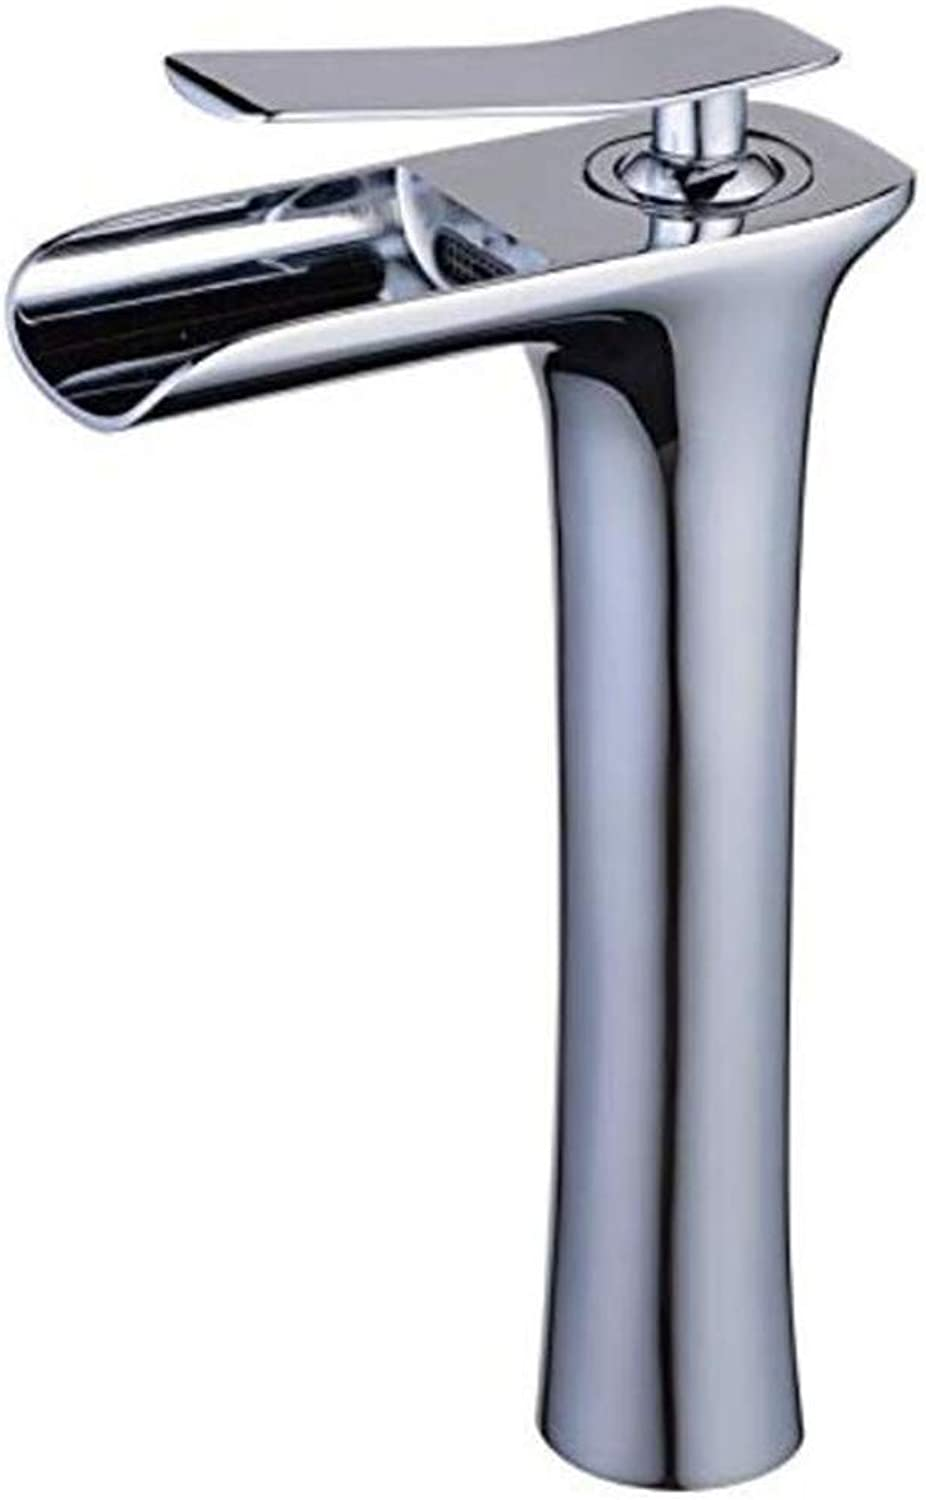 Basin Mixer Sink Taps Single Handle Waterfall Spout Tall Bathroom Sink Tap Polished Chrome Finish